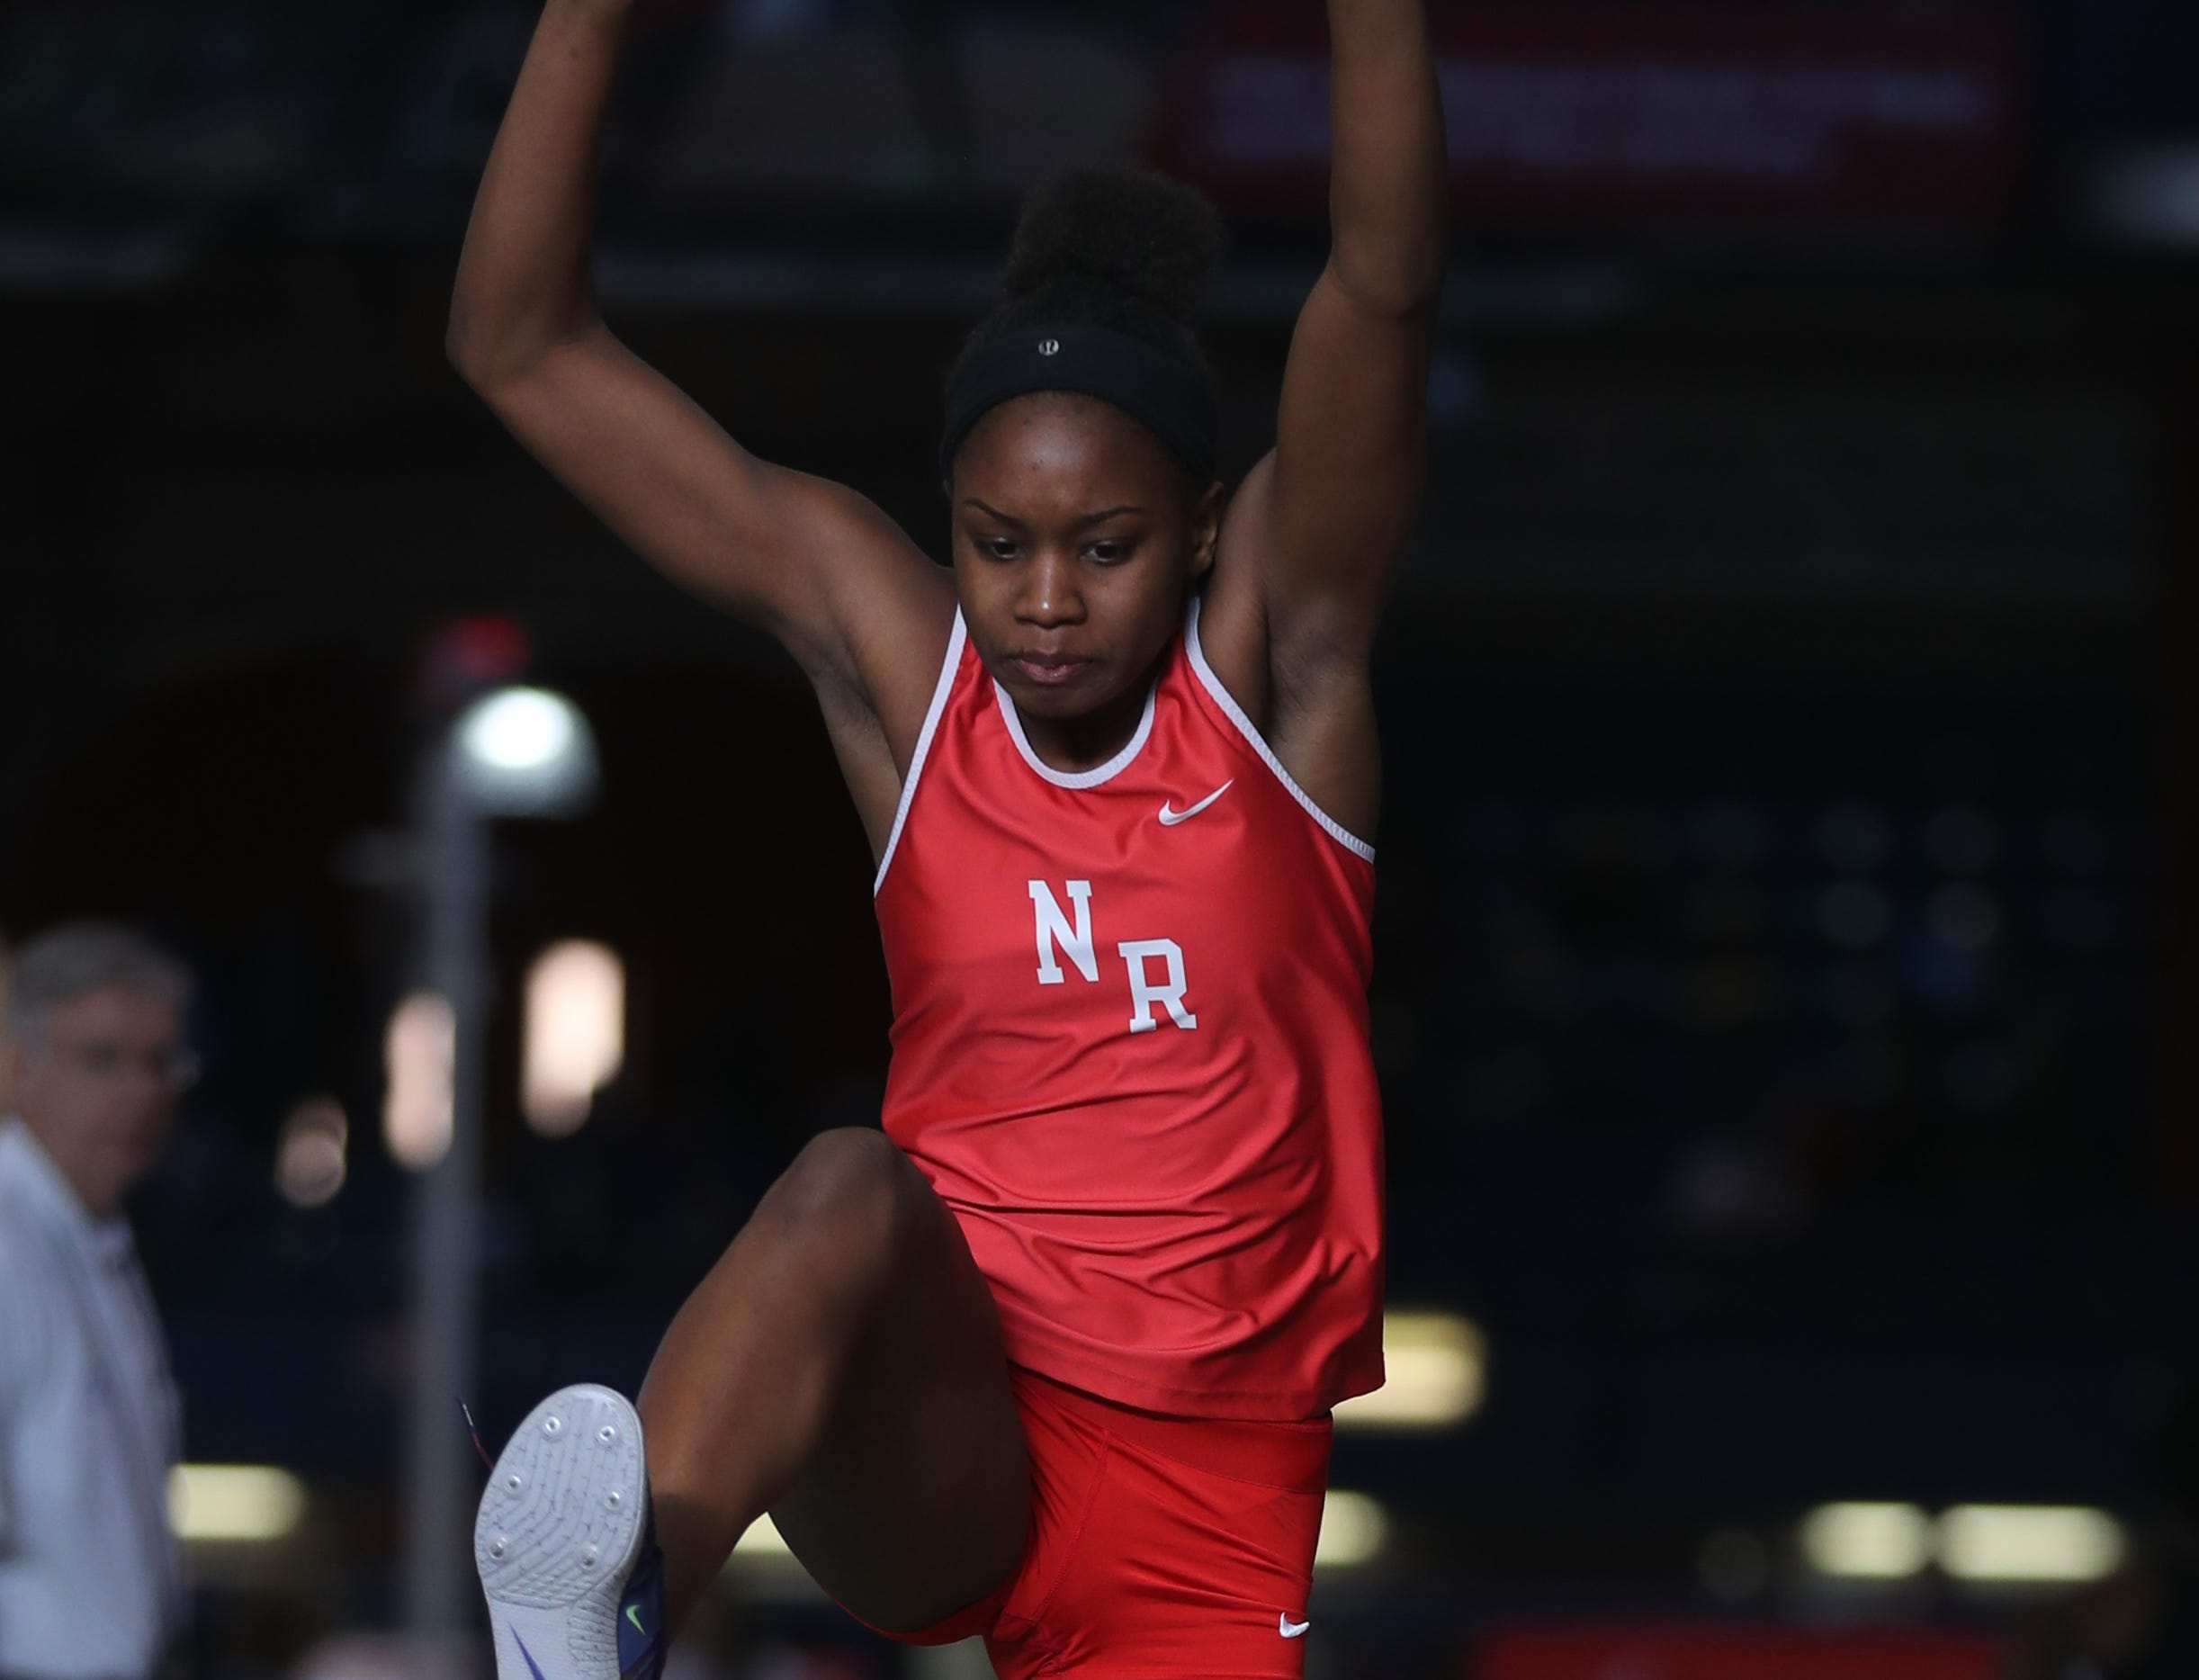 Nadia Saunders of North Rockland competes in the triple jump during the Section 1 New York State Track and Field State Qualifier at the New Balance Armory in Manhattan Feb. 17, 2019.